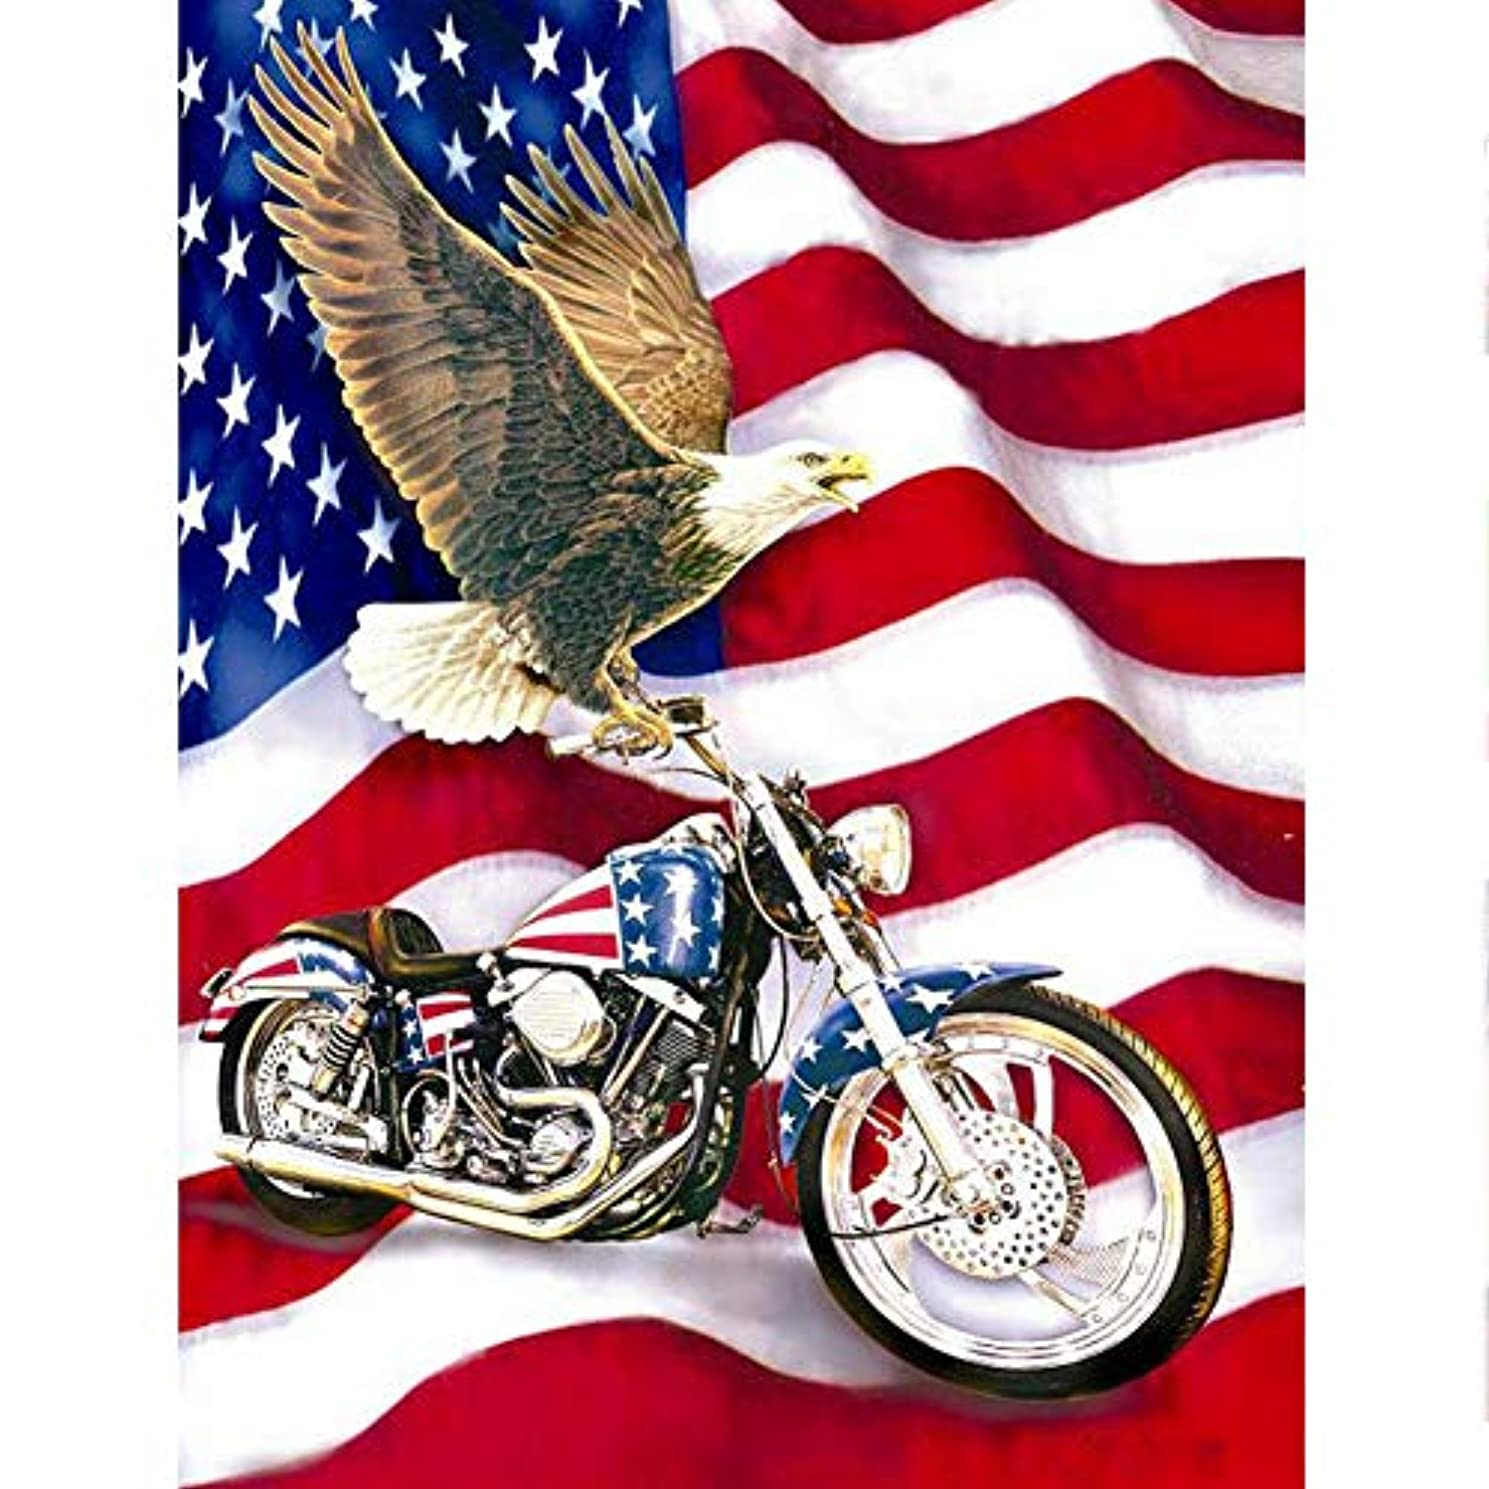 UPMALL DIY 5D Diamond Painting by Number Kits, Full Drill Crystal Rhinestone Embroidery Pictures Arts Craft for Home Wall Decoration American Flag & Eagle 11.8×15.7Inches